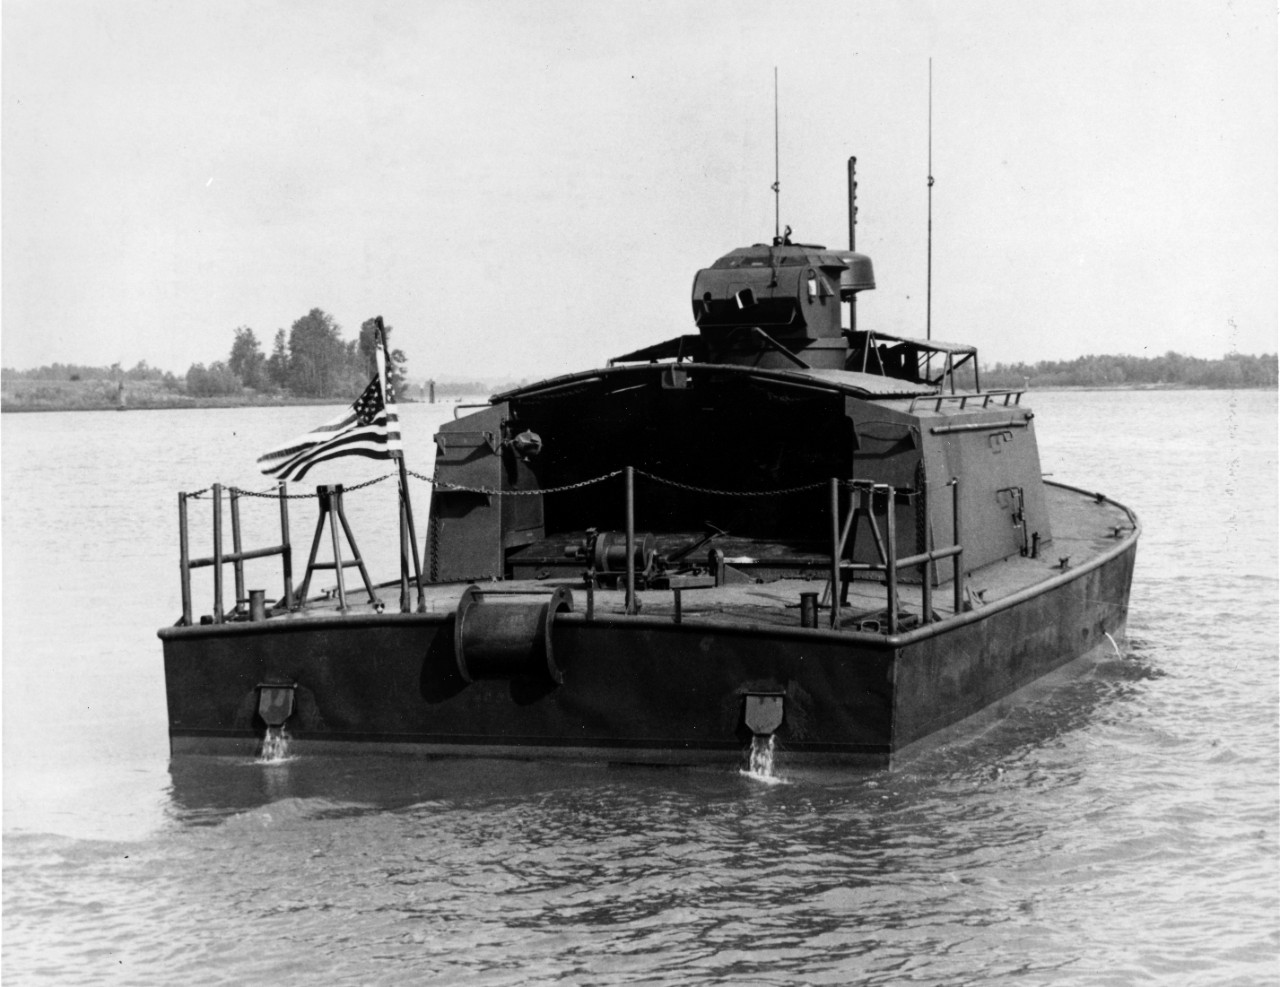 Collection of 152 photographs (copies, originals loaned from the Boats and Landing Craft office at NAVSEA) of riverine craft from the Vietnam era. See below for full inventory.